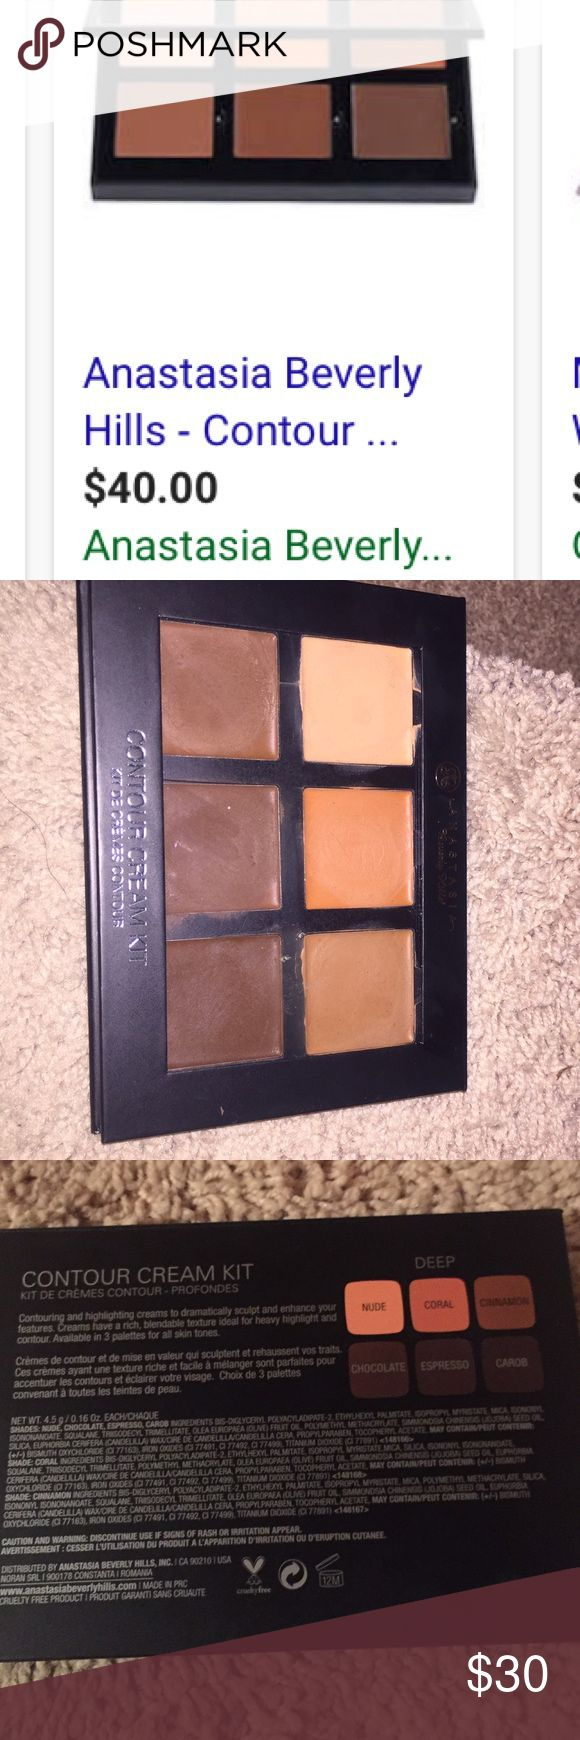 Anastasia Beverly Hills deep cream contour palette Used a few times. Just don't use it. Perfect for highlight and contour. And color correcting for dark spots or dark circles under the eye with the peach corrector. Anastasia Beverly Hills Makeup Concealer